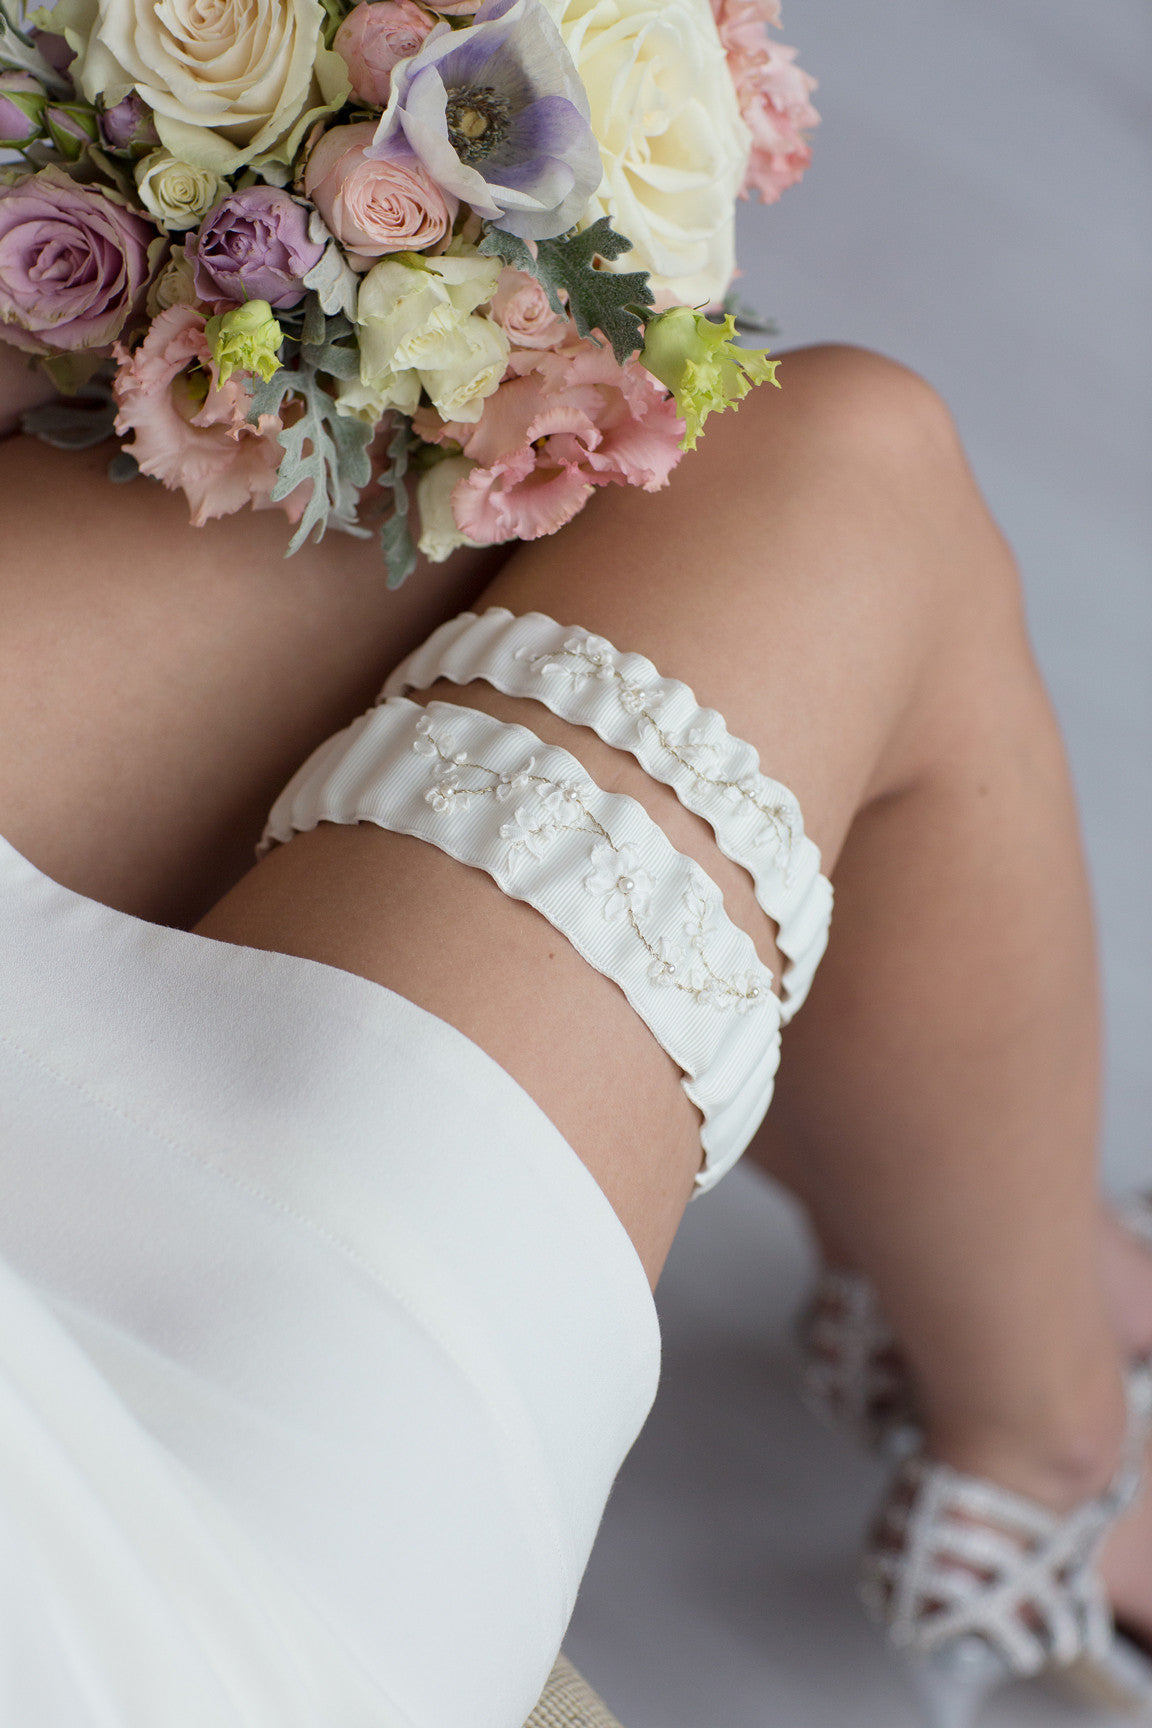 White Bridal Garter Ruffle Flower Embroidery by Liumy Design Atelje - Liumy